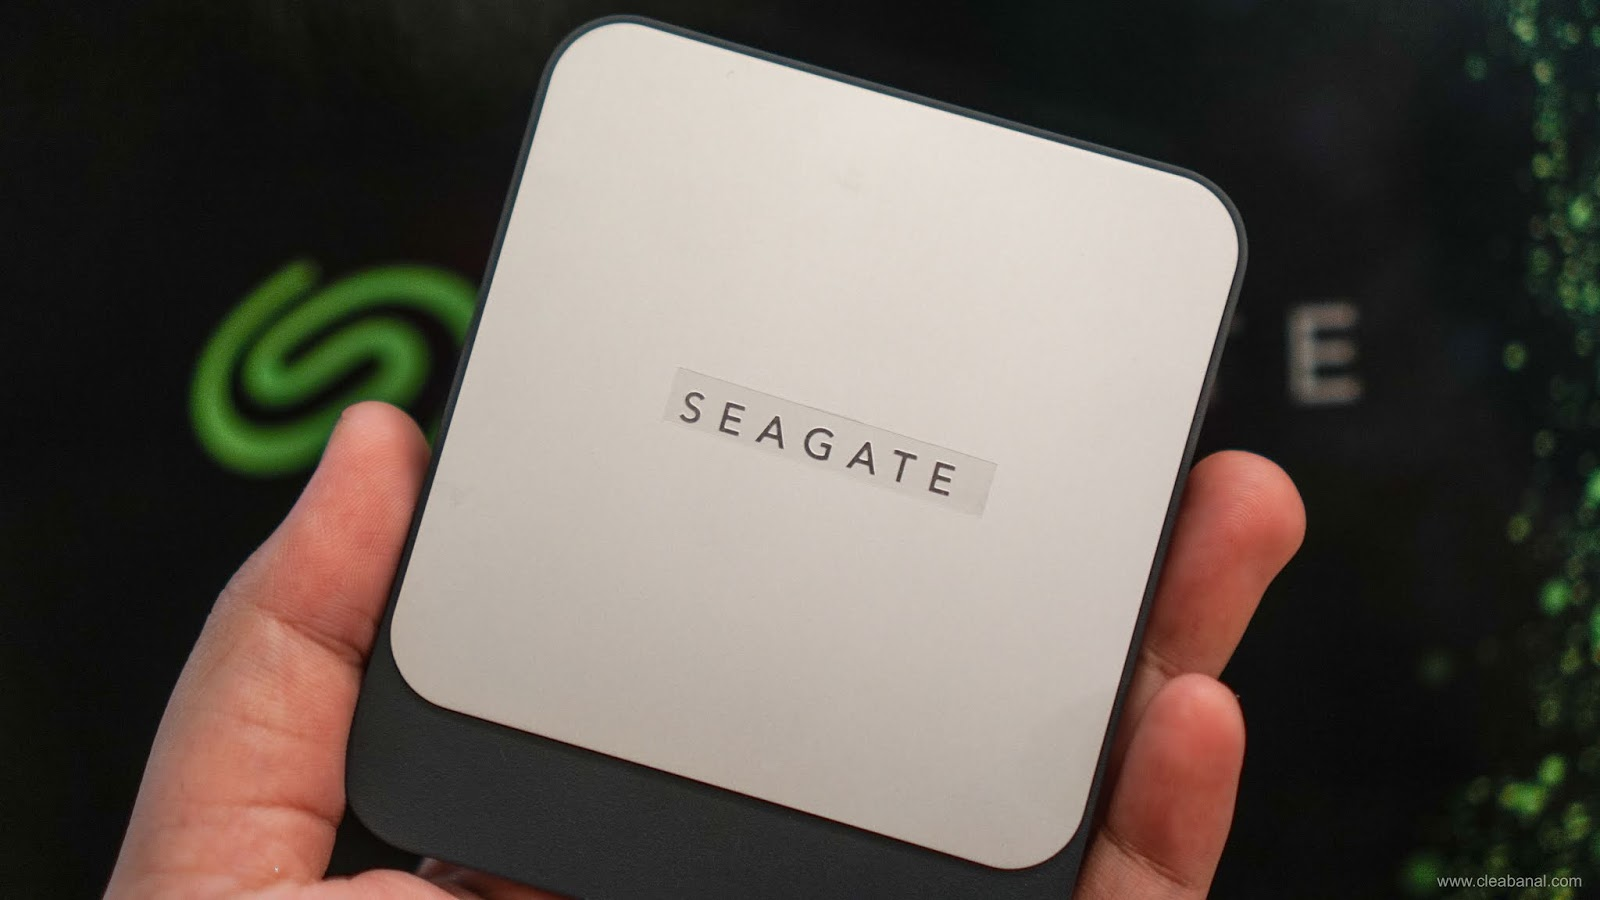 Seagate's New Products in 2019